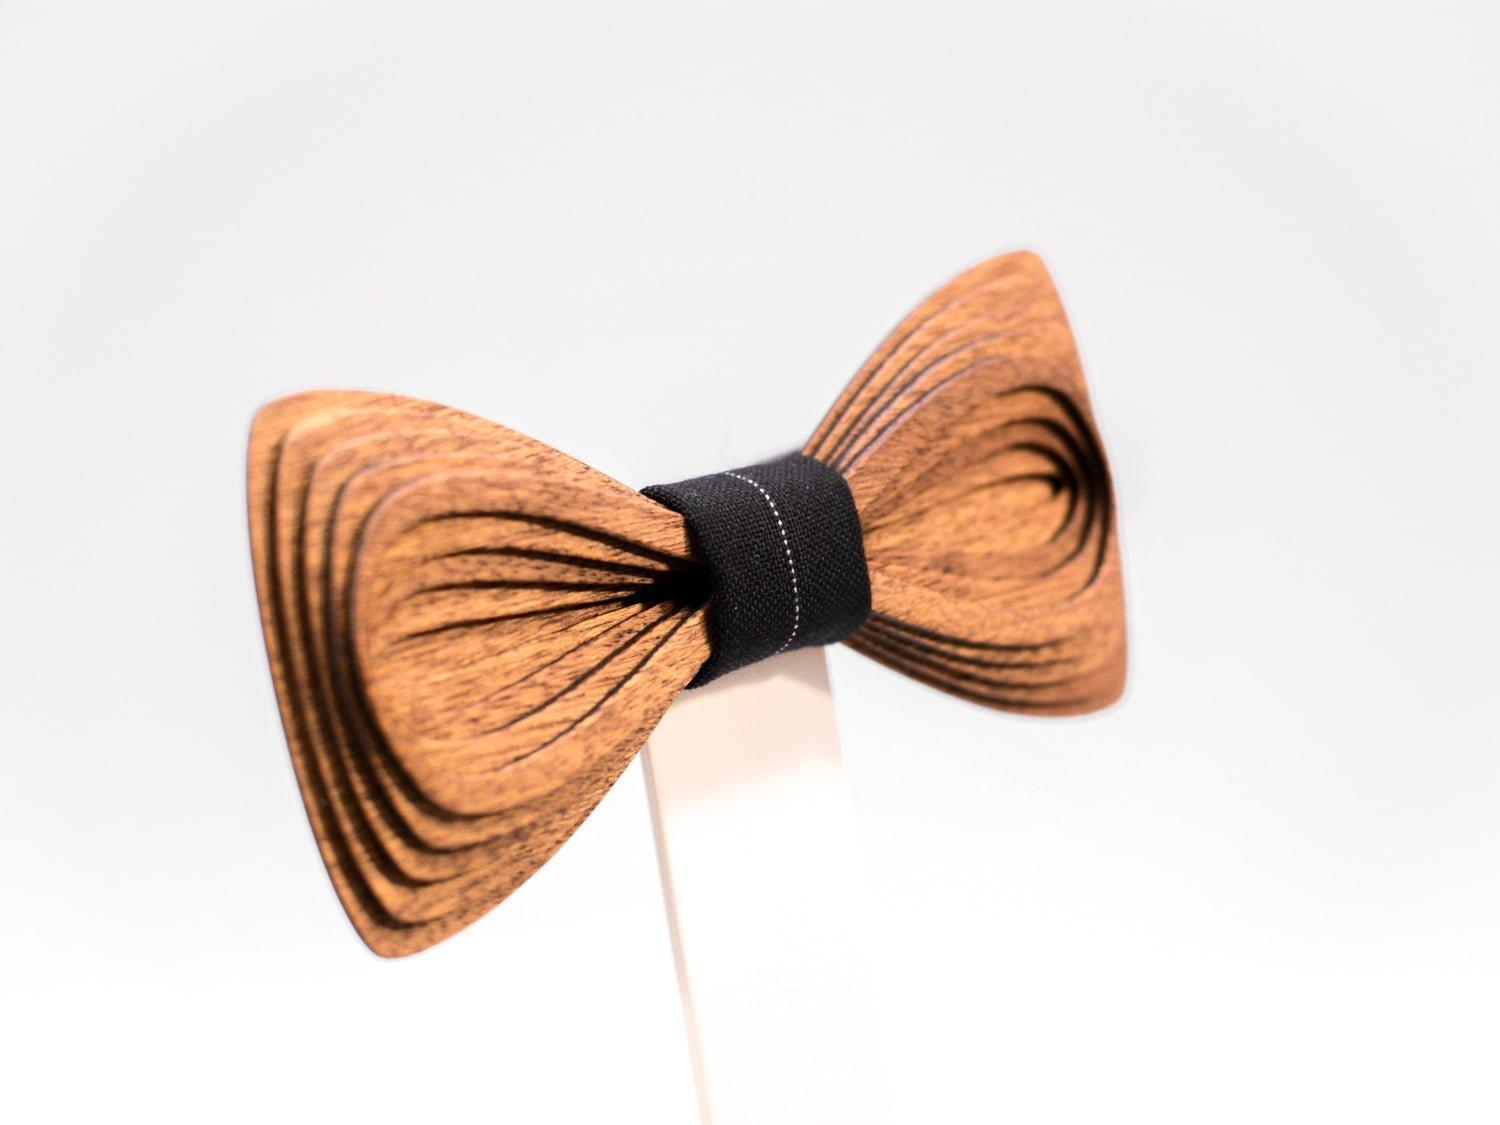 SÖÖR Antero neckwear in mahogany. A unique wooden bowtie for men by Hermandia.